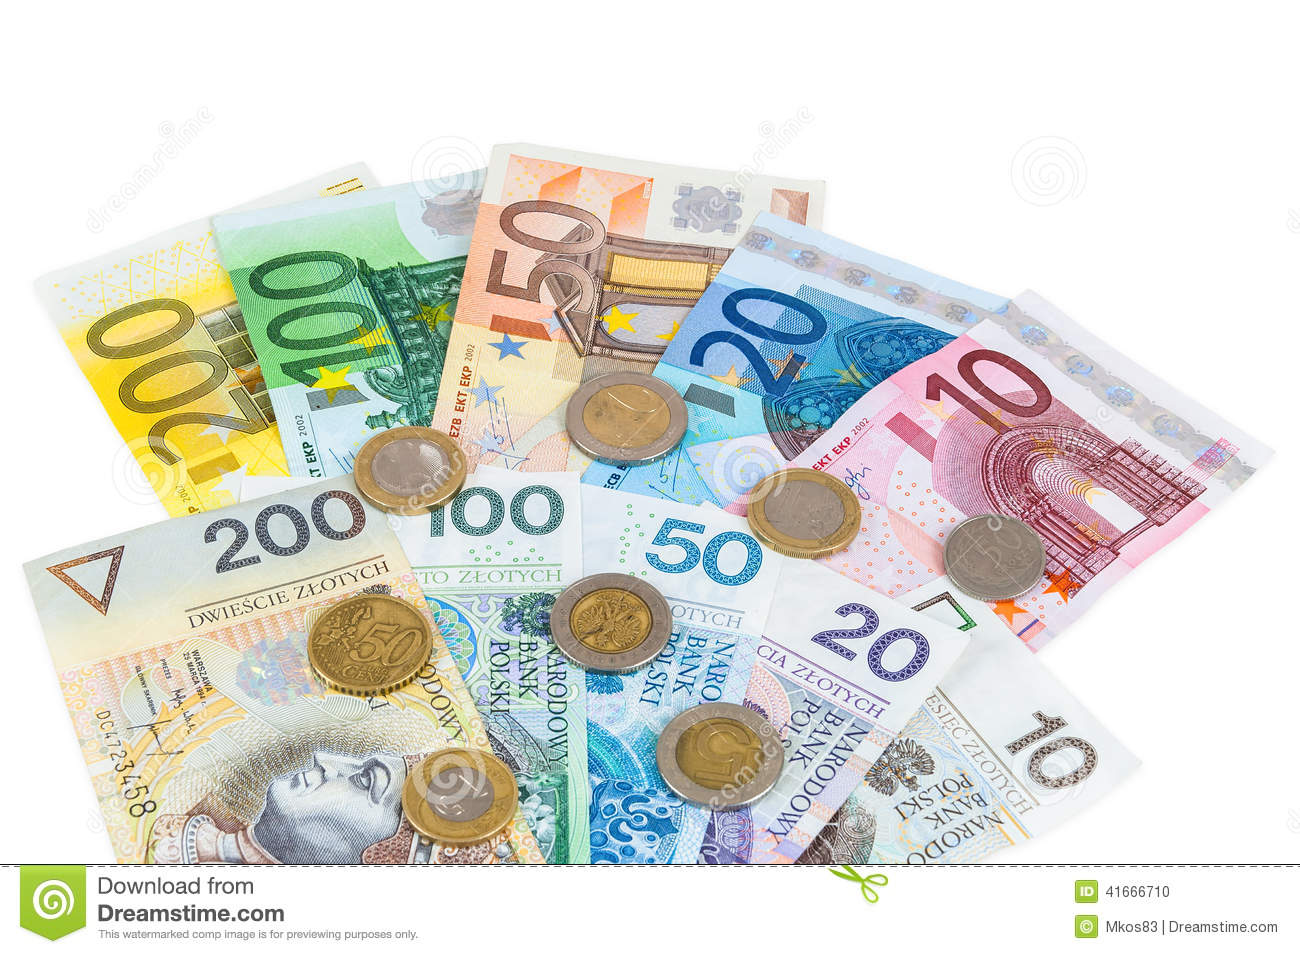 Euro and new polish zloty banknotes with coins